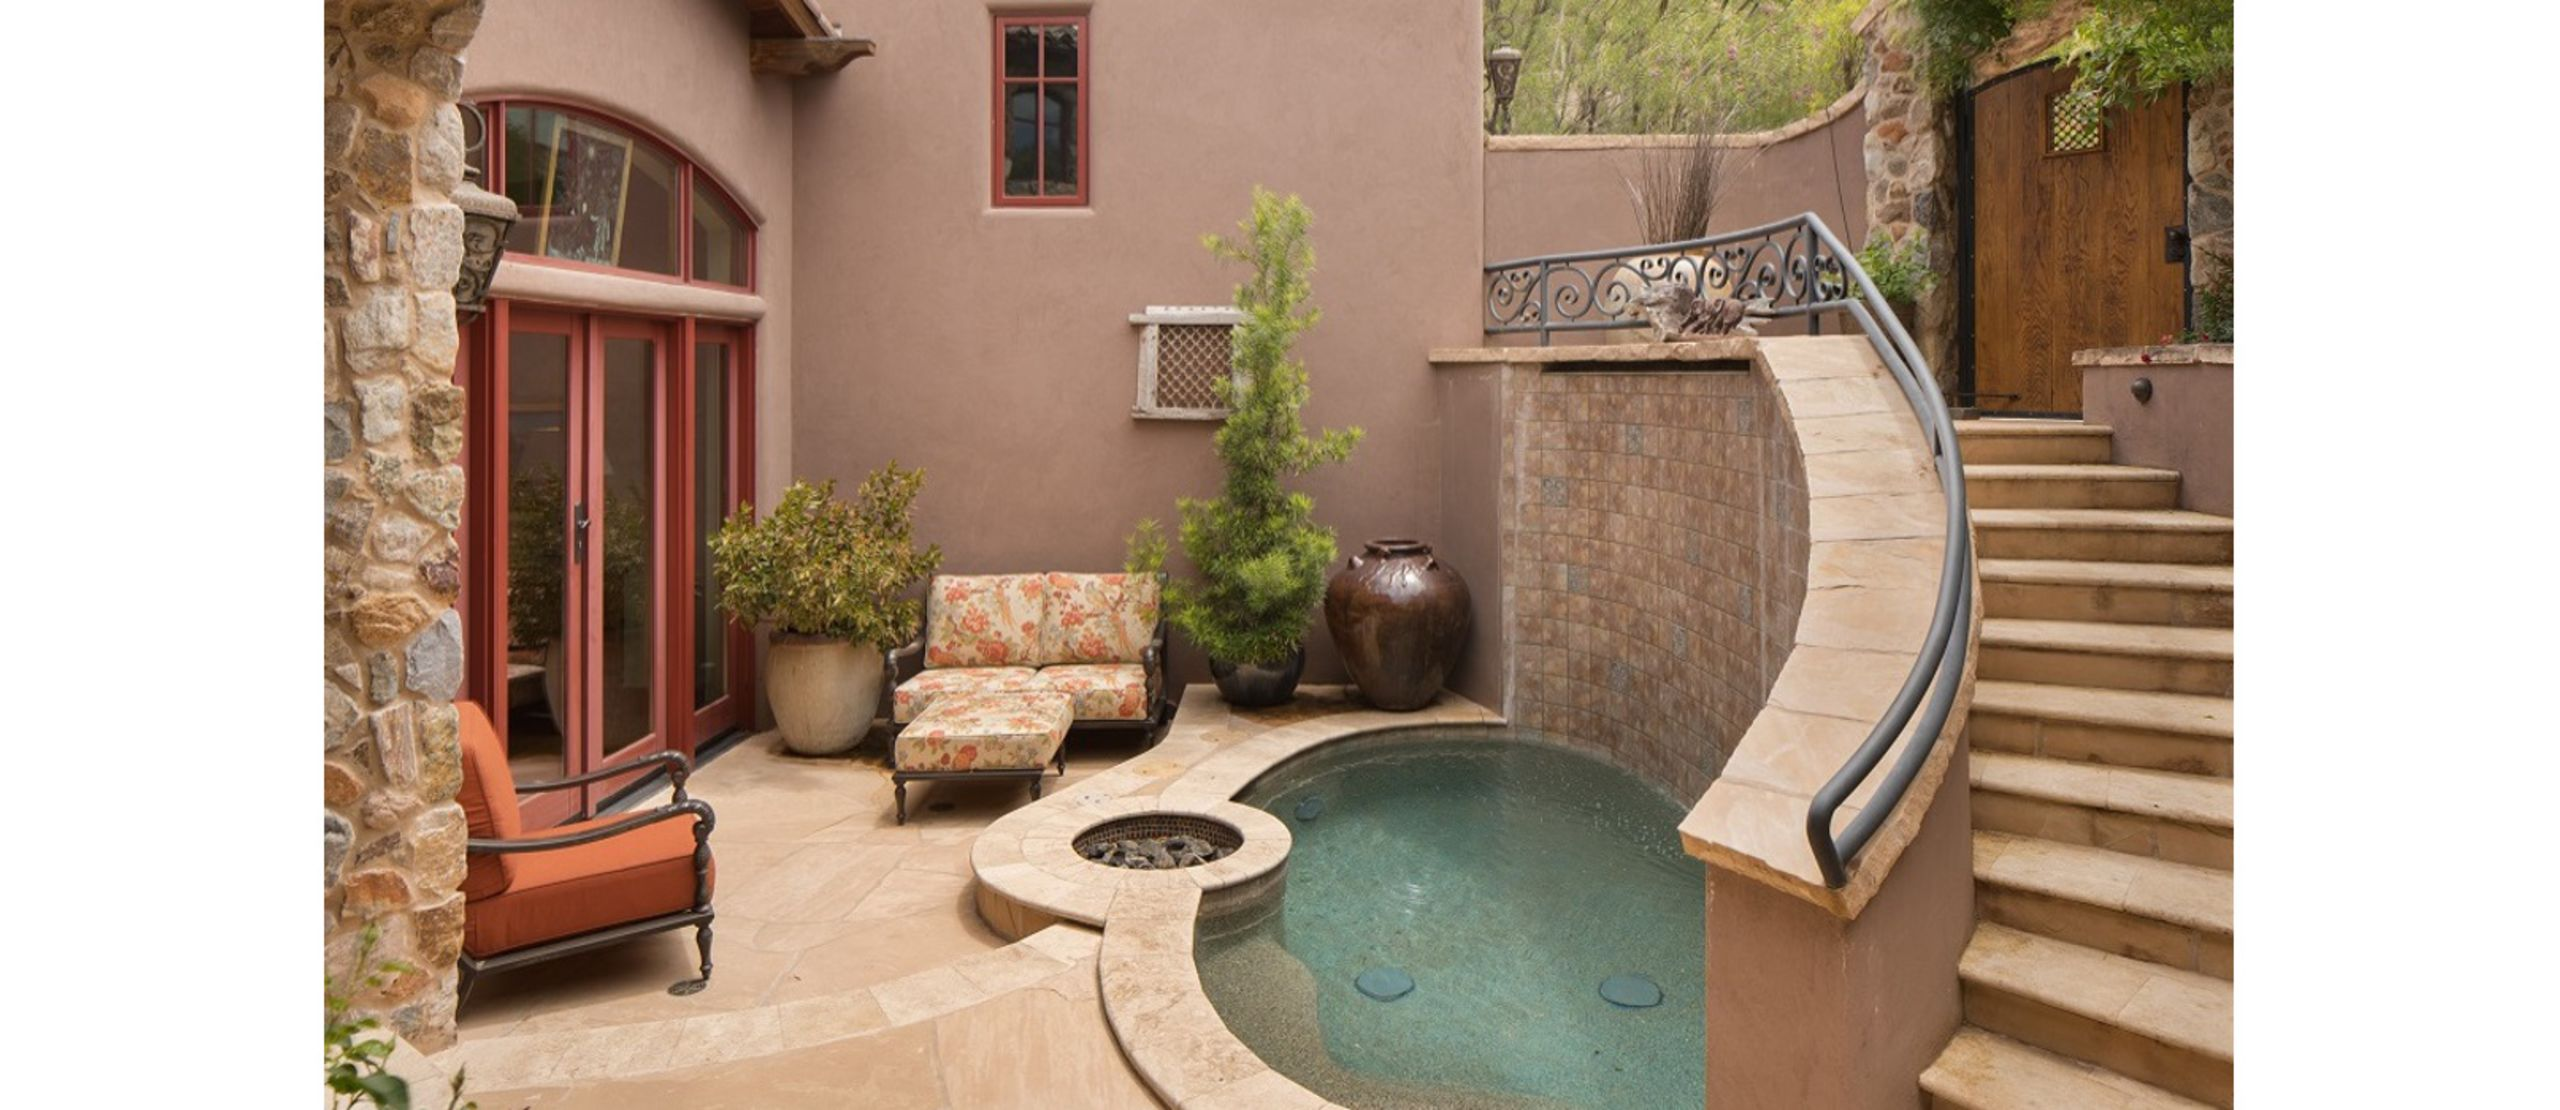 Sunken courtyard with spool for tranquil, private, space